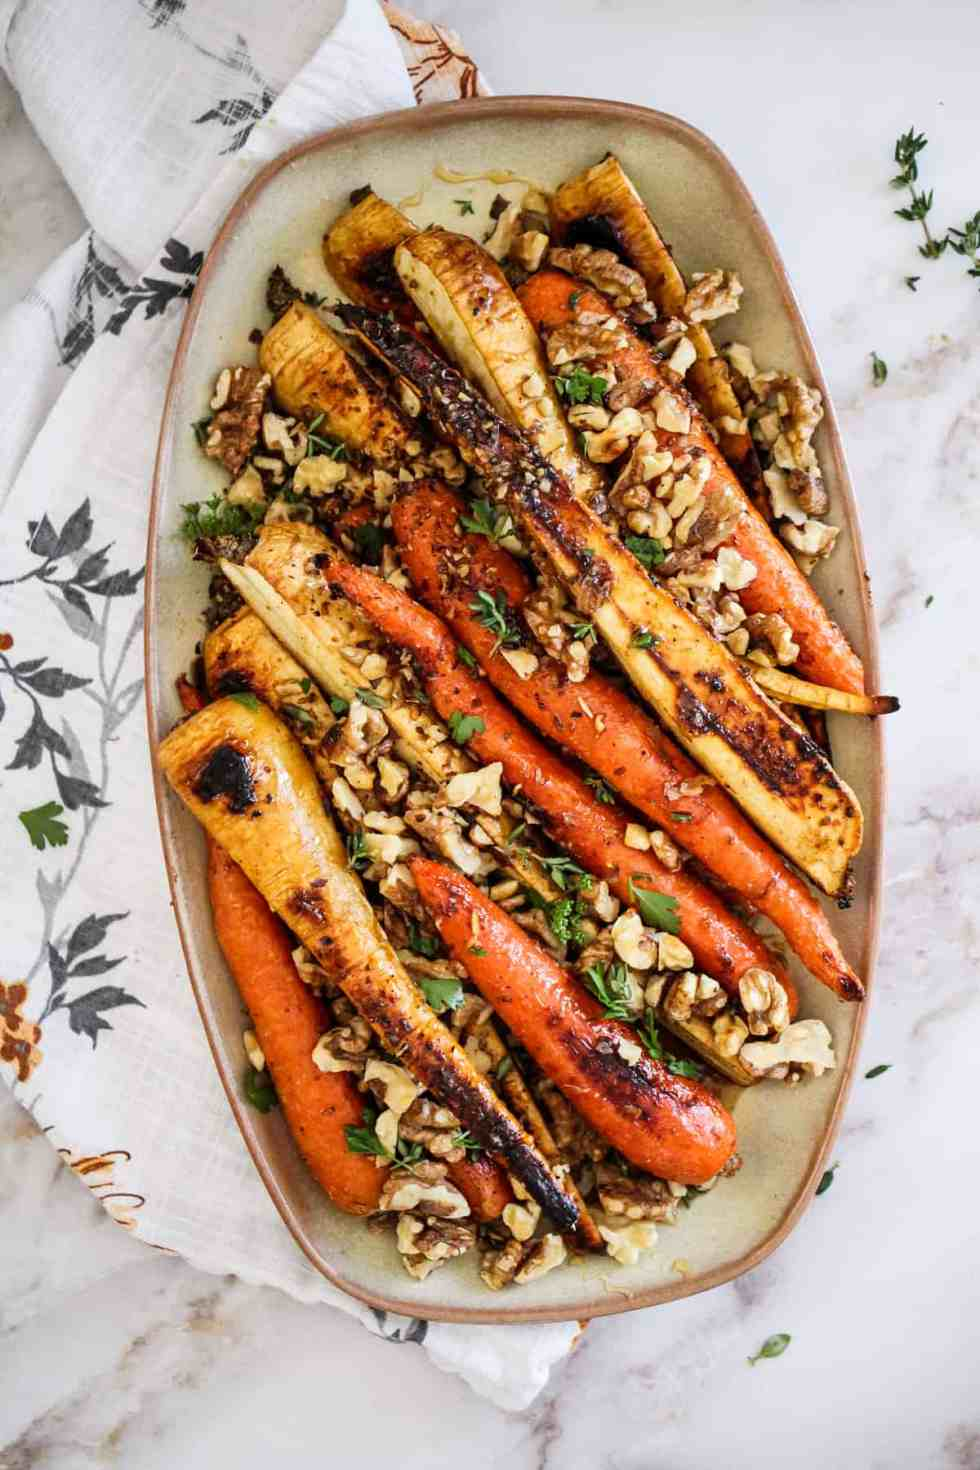 Platter of roasted vegetables topped with walnuts and herbs.